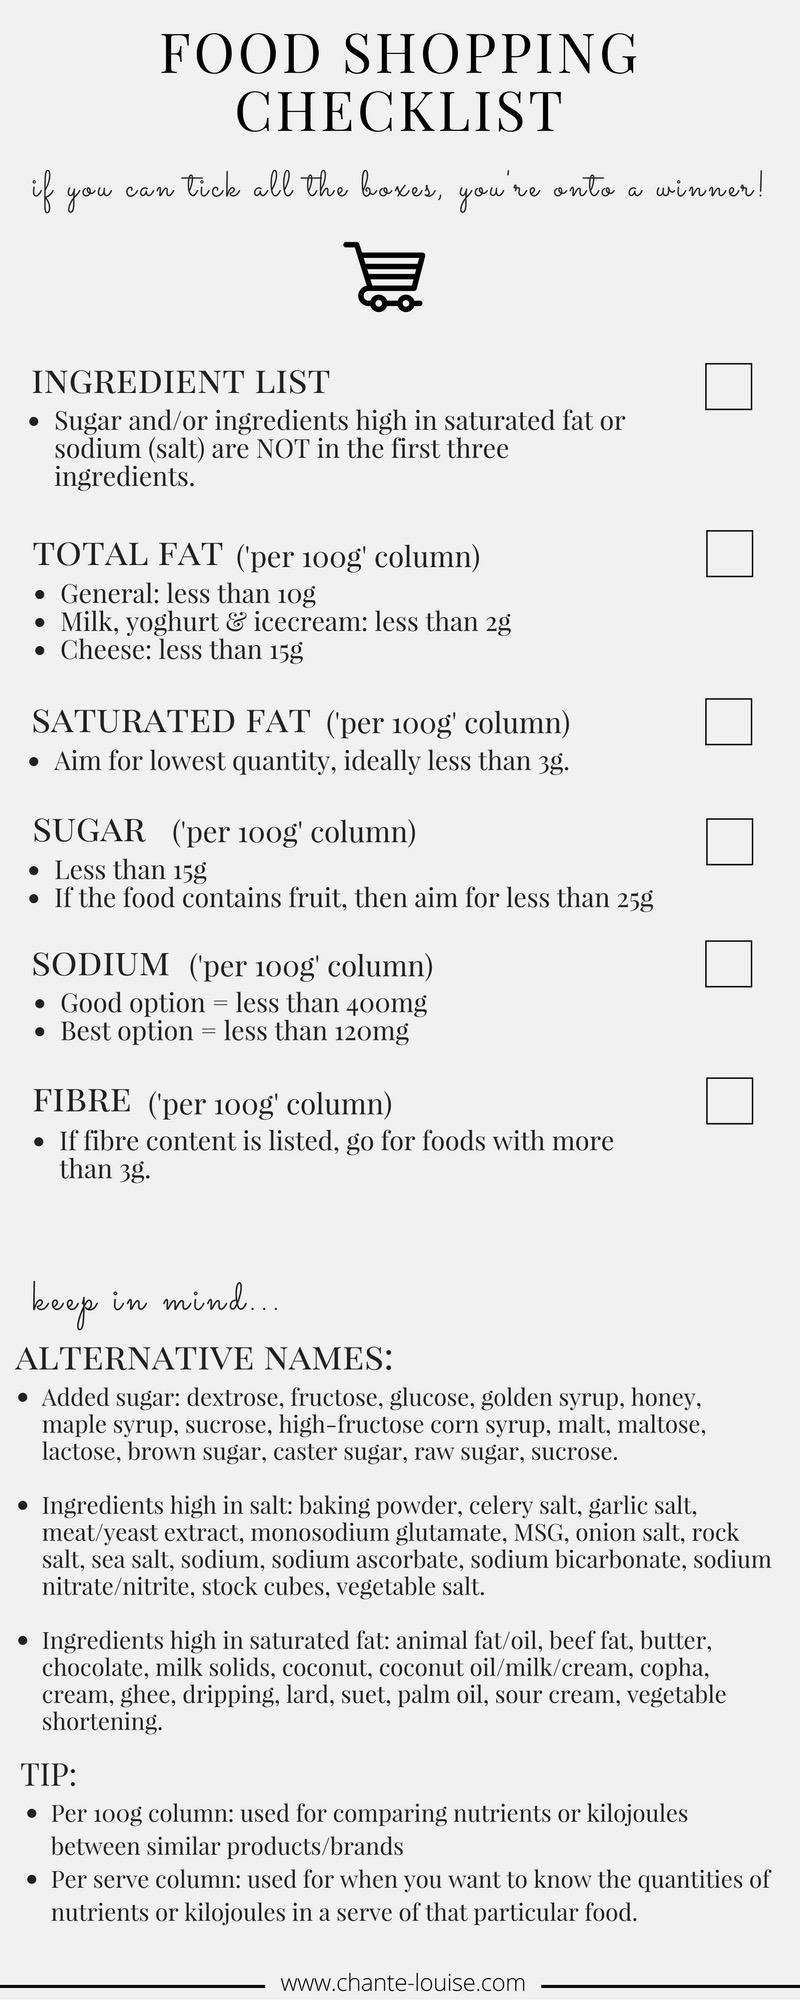 A checklist to be able to pick out the healthy foods during food shopping